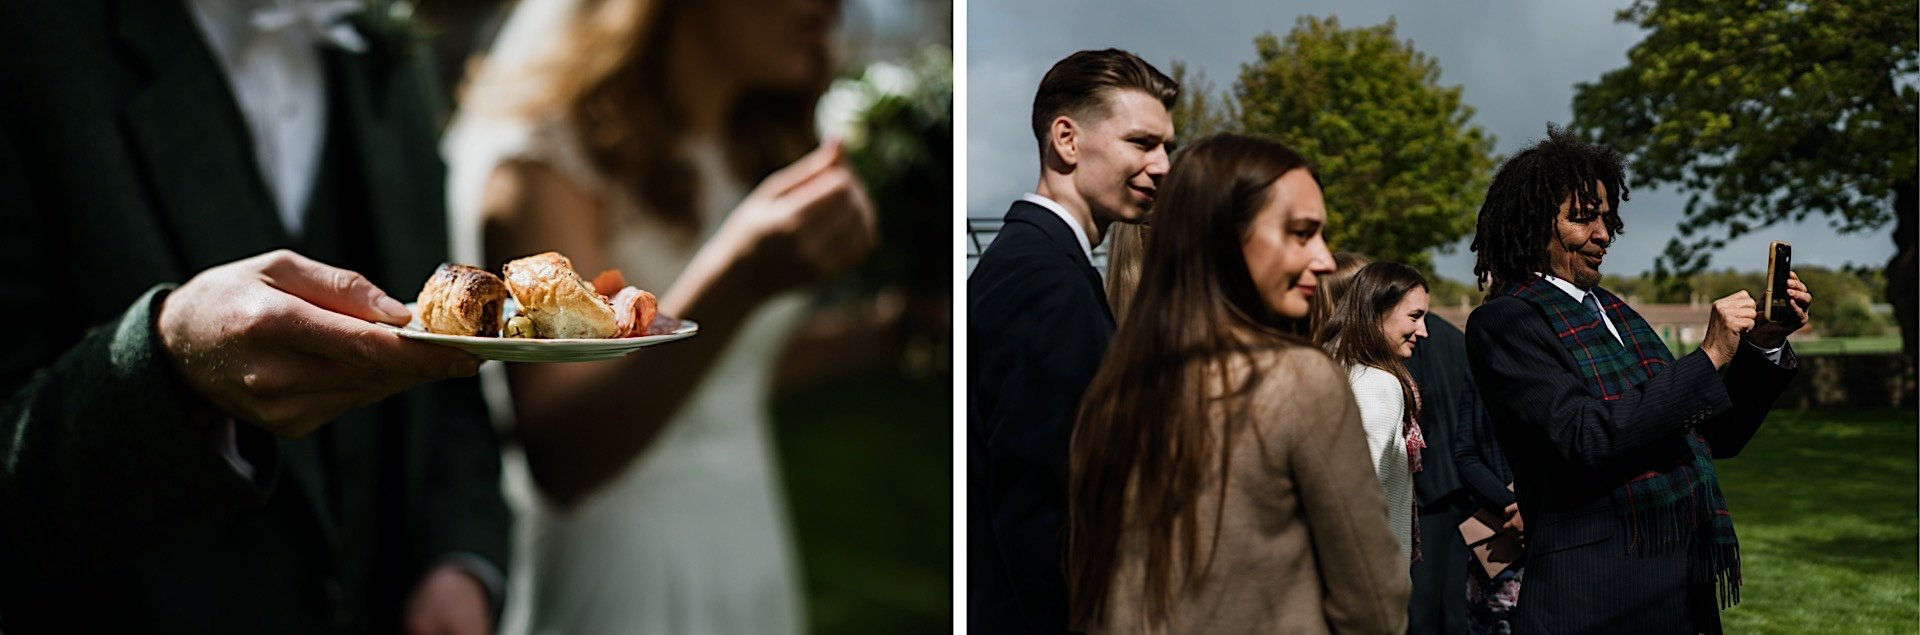 photos of taking holding canapes plate in garden guests Wedding groom